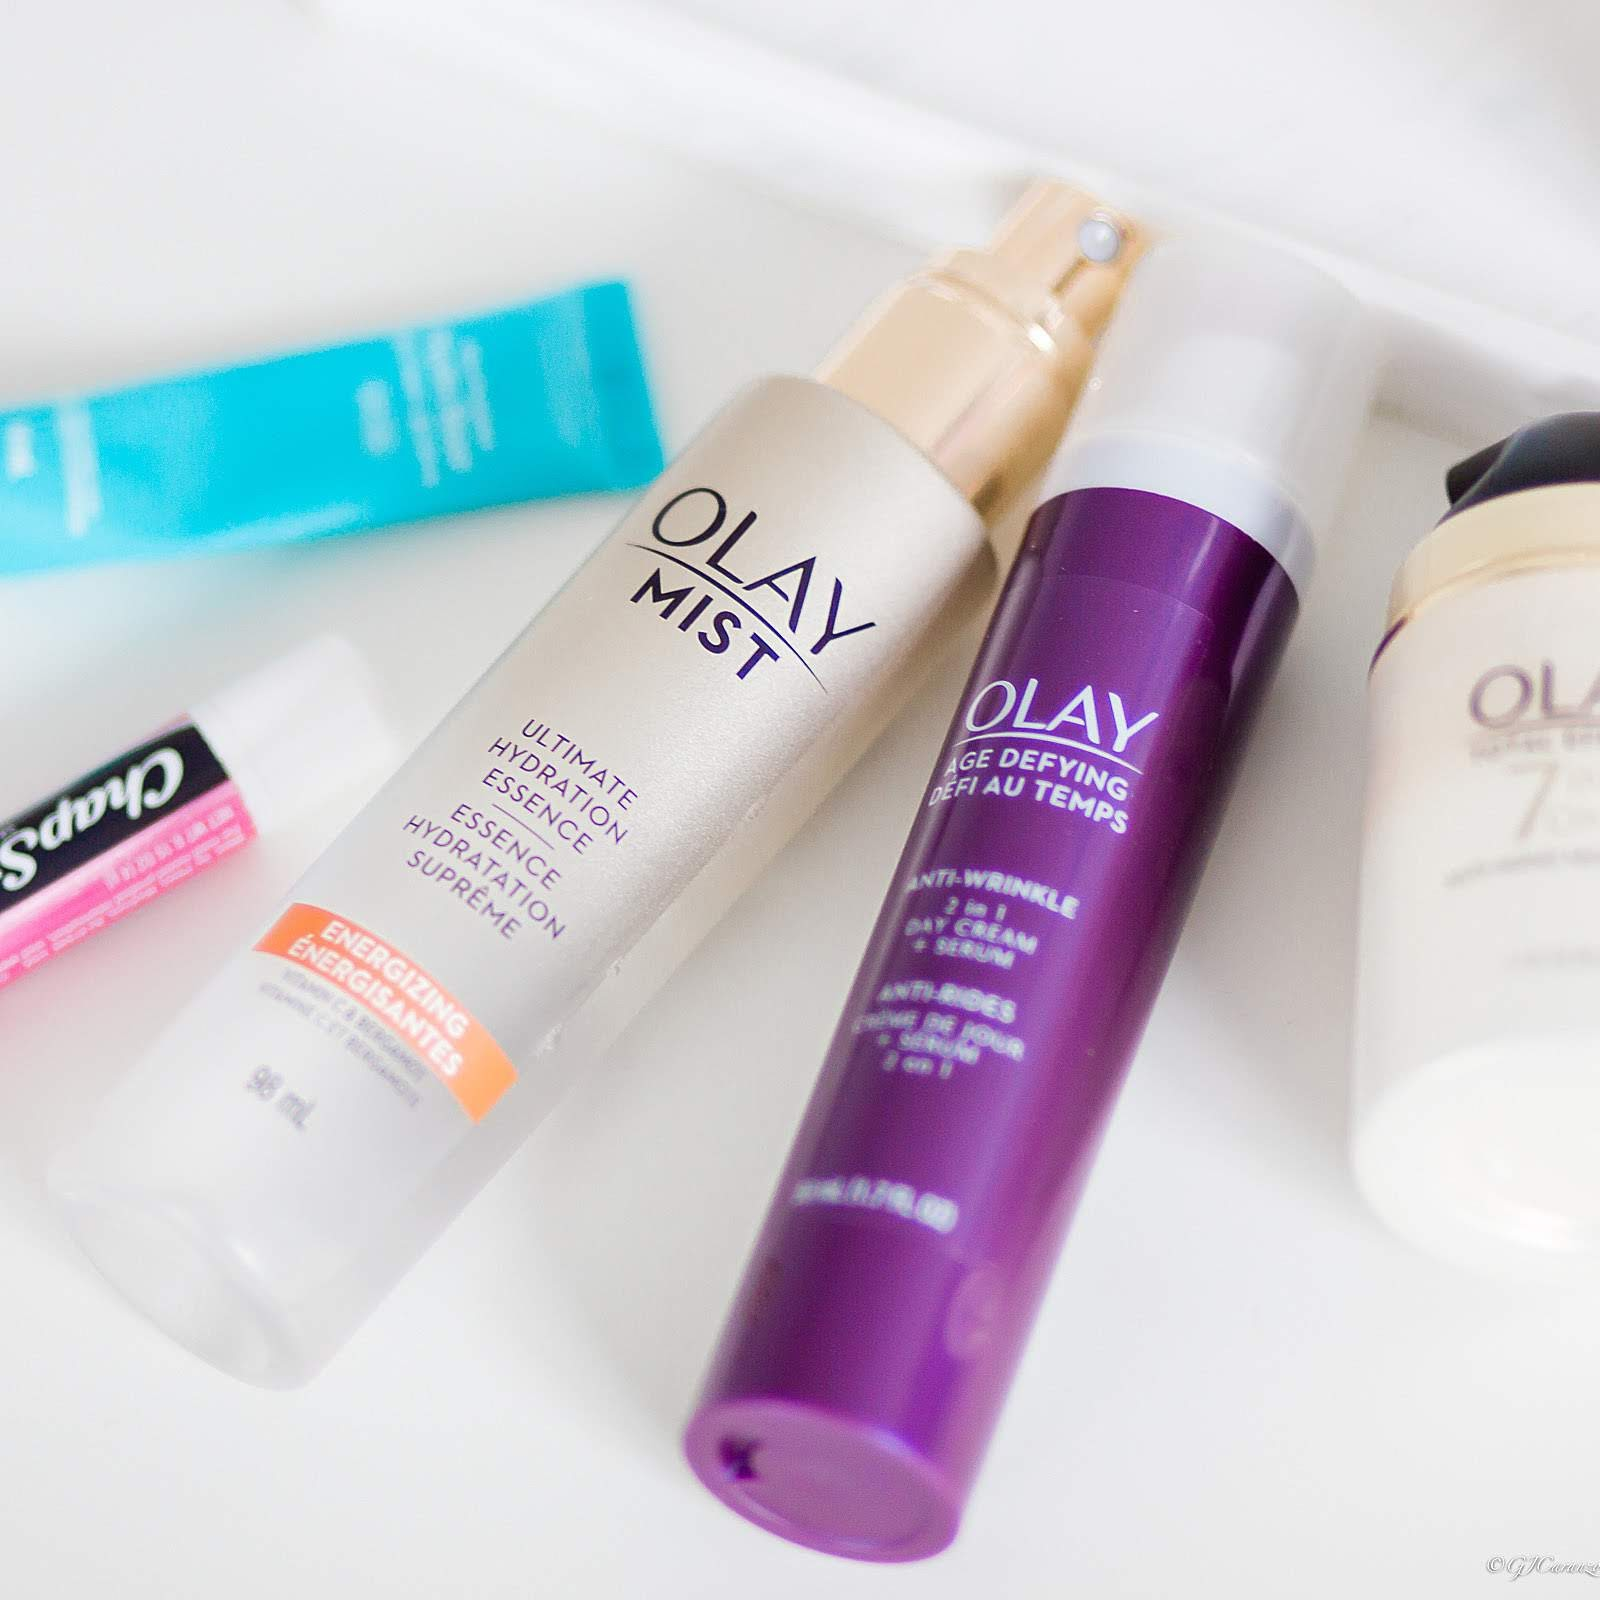 Winter Beauty Routine 2020 + The Face Product That Help Me With My Winter Skin Issues